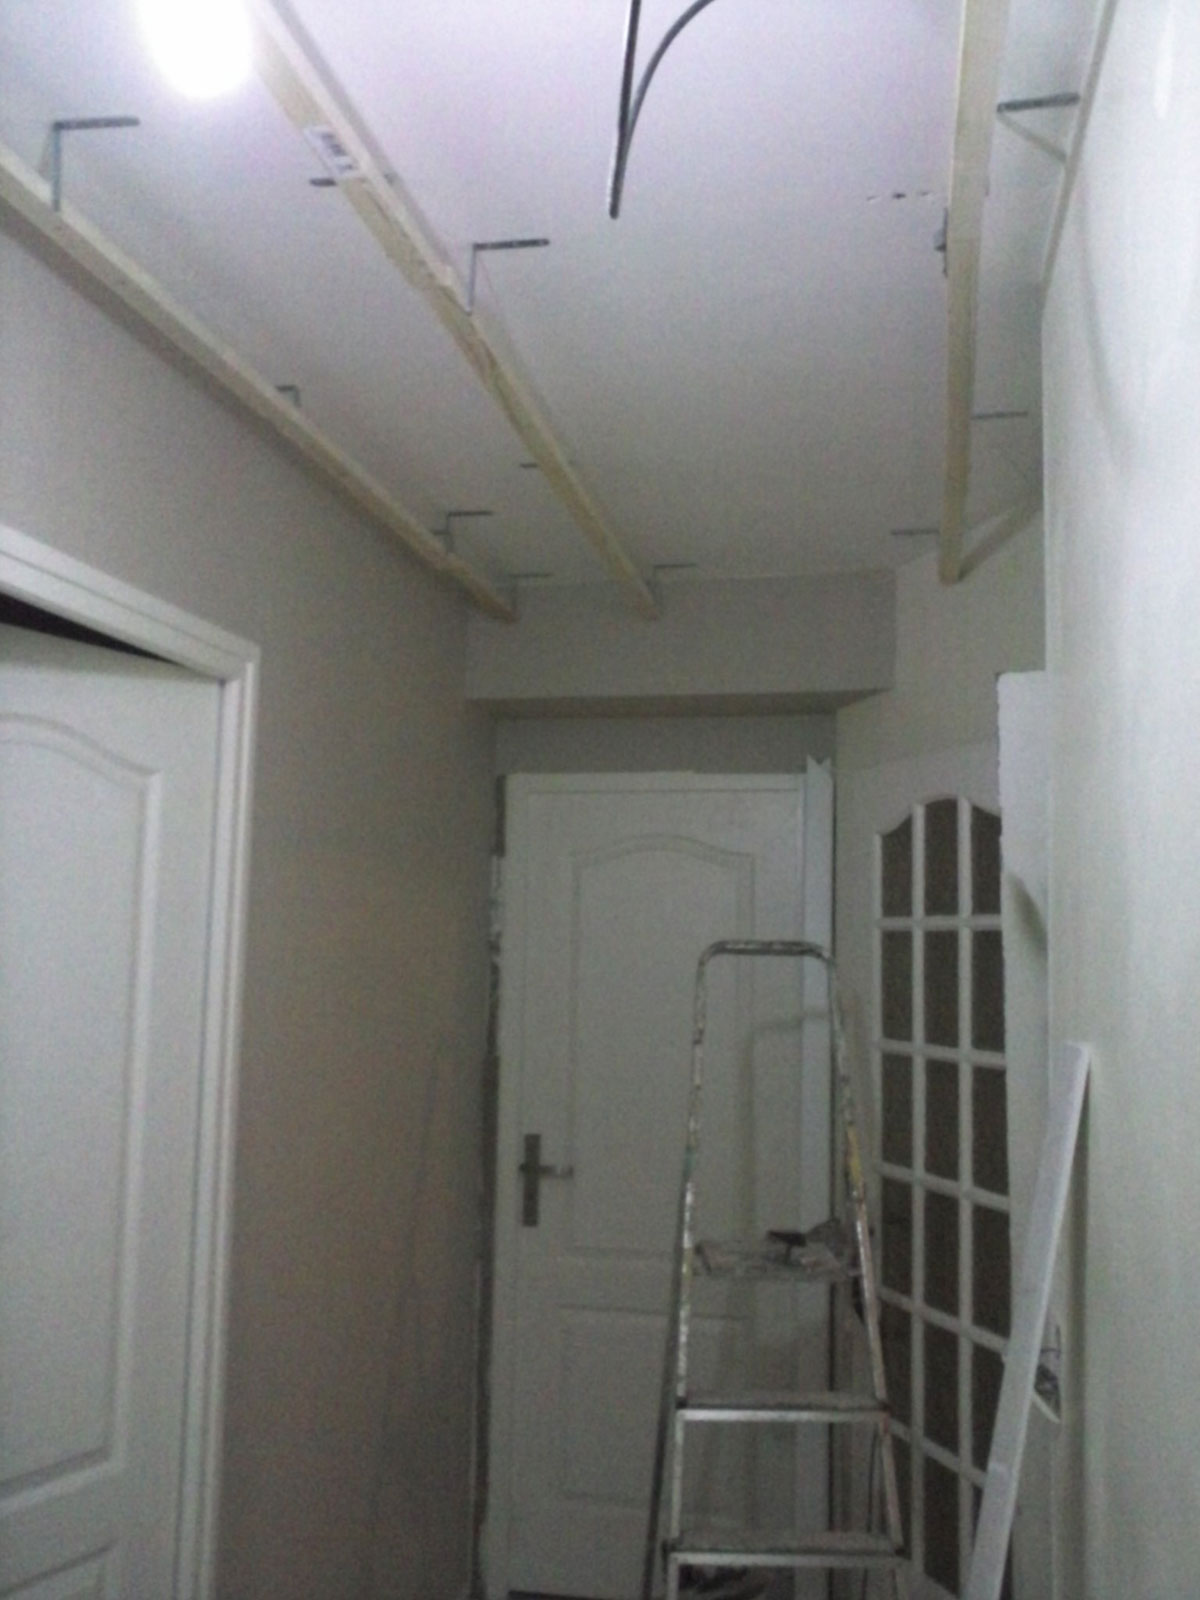 R novation de ma maison transformation d 39 un couloir - Comment peindre un mur tapisse ...